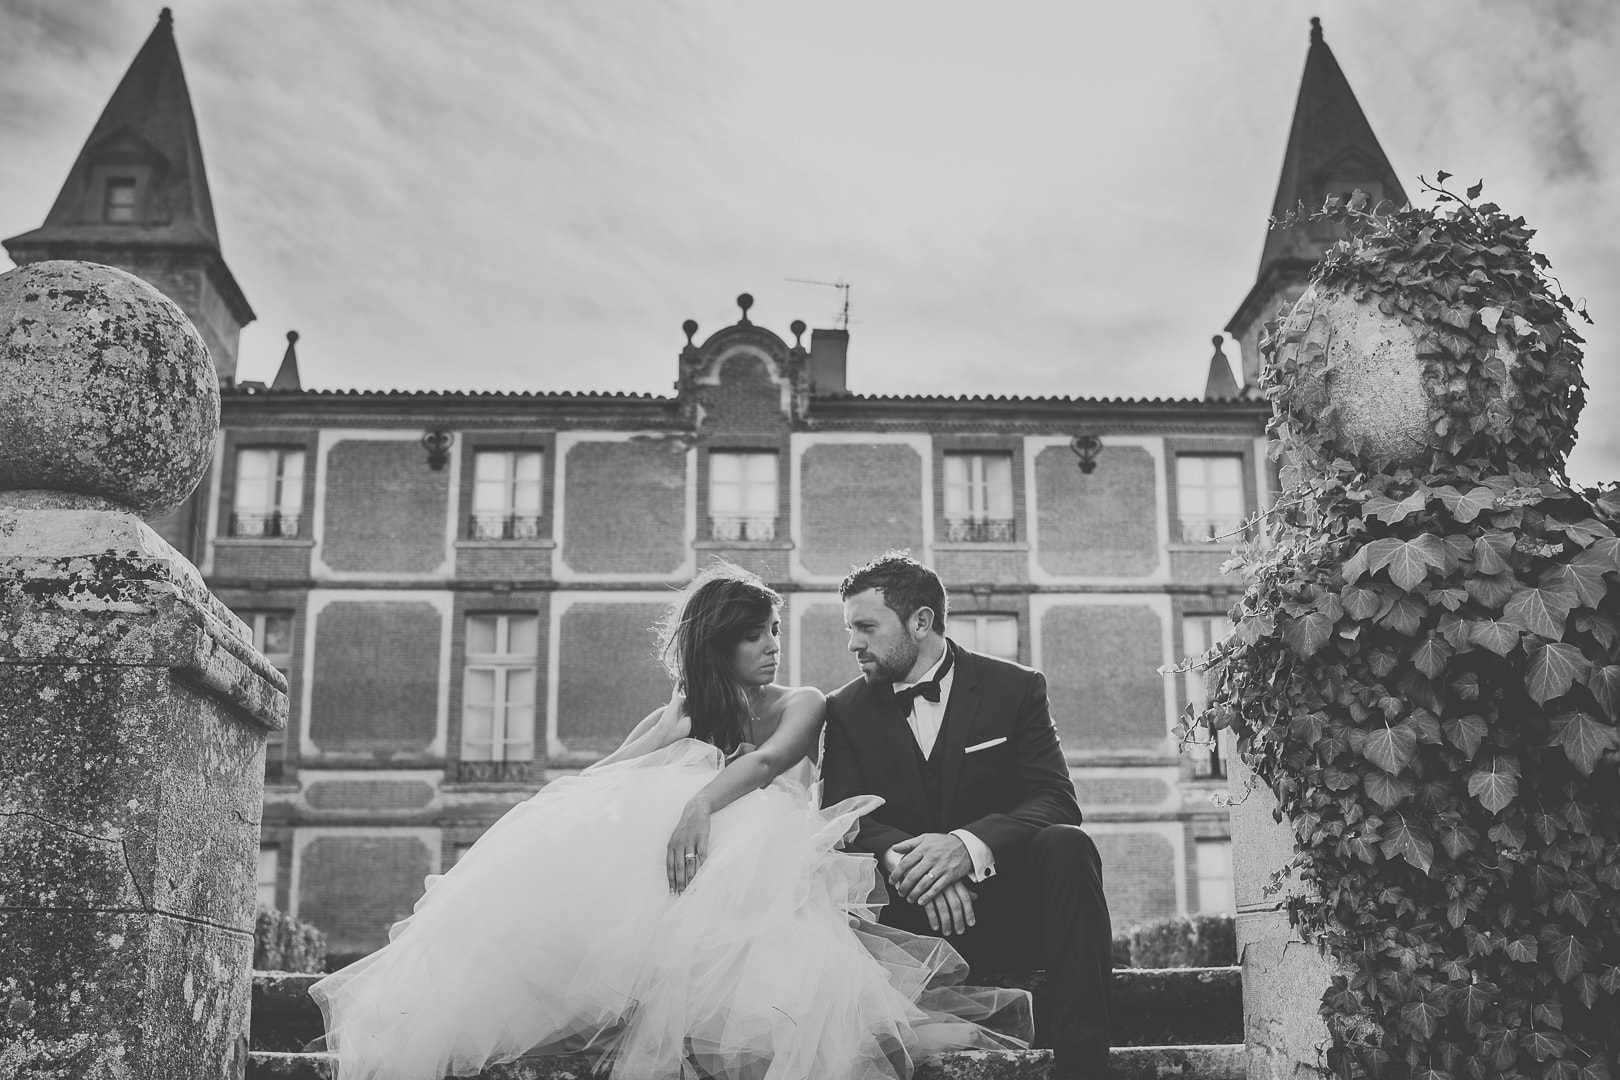 trezors-photography-photographe-professionnel-toulouse-31-mariage-reportage-photo-lifestyle (8)